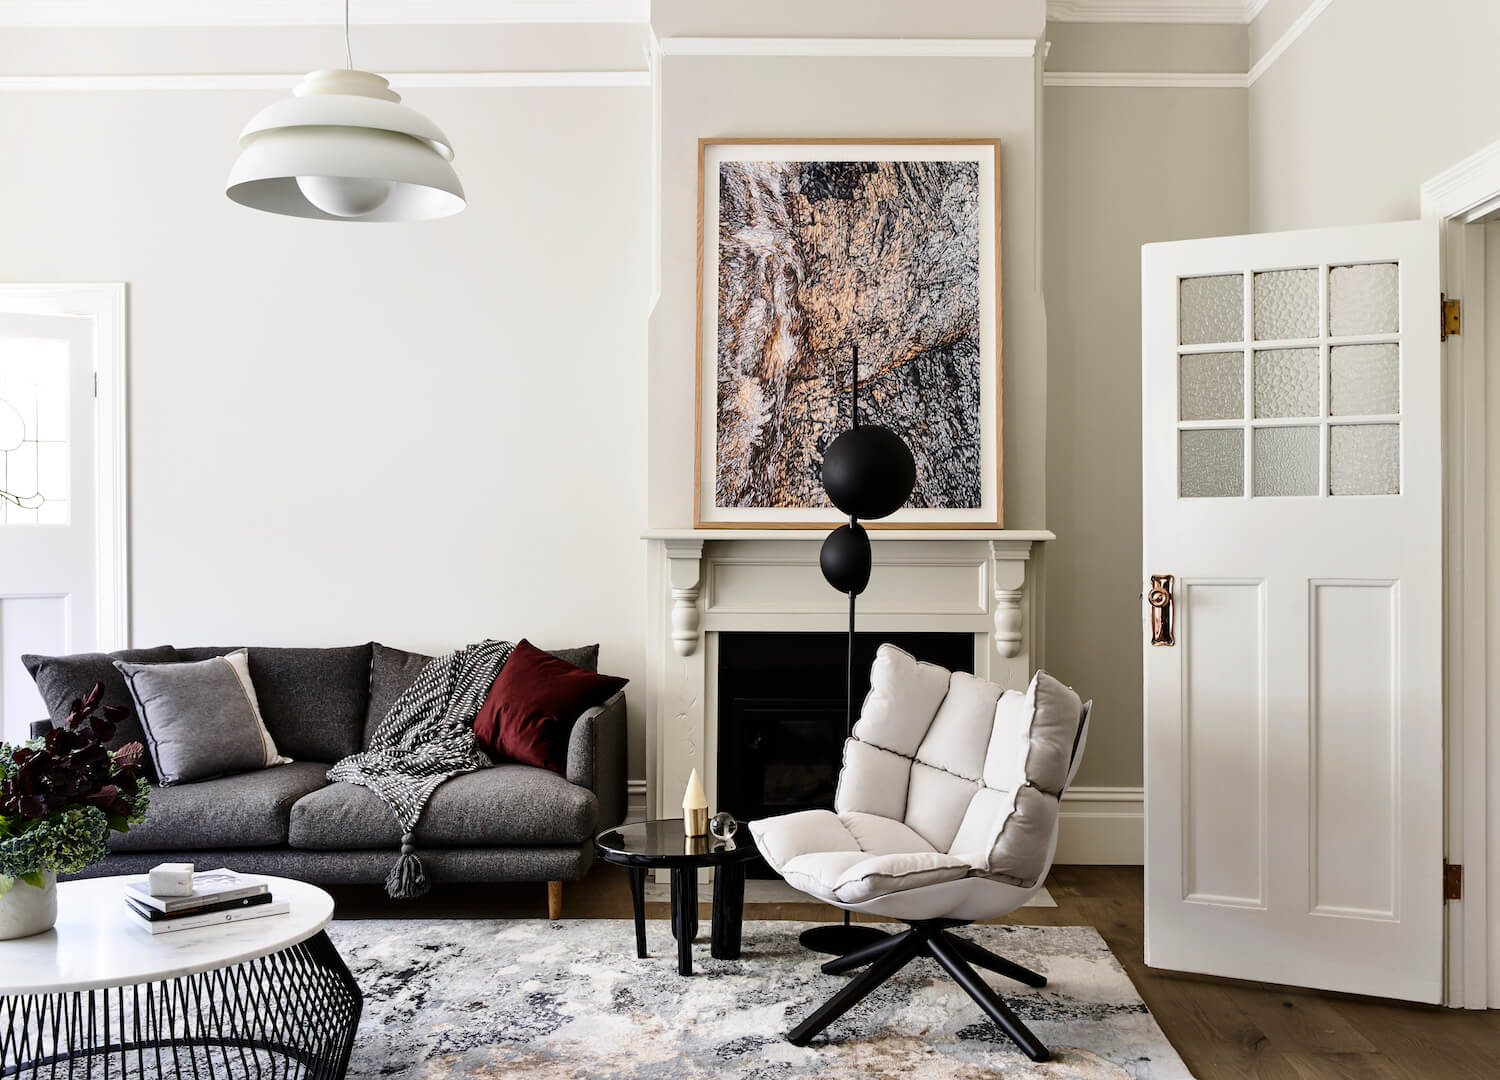 est living designer interview mardi doherty design studio ivanhoe res derek swalwell 2